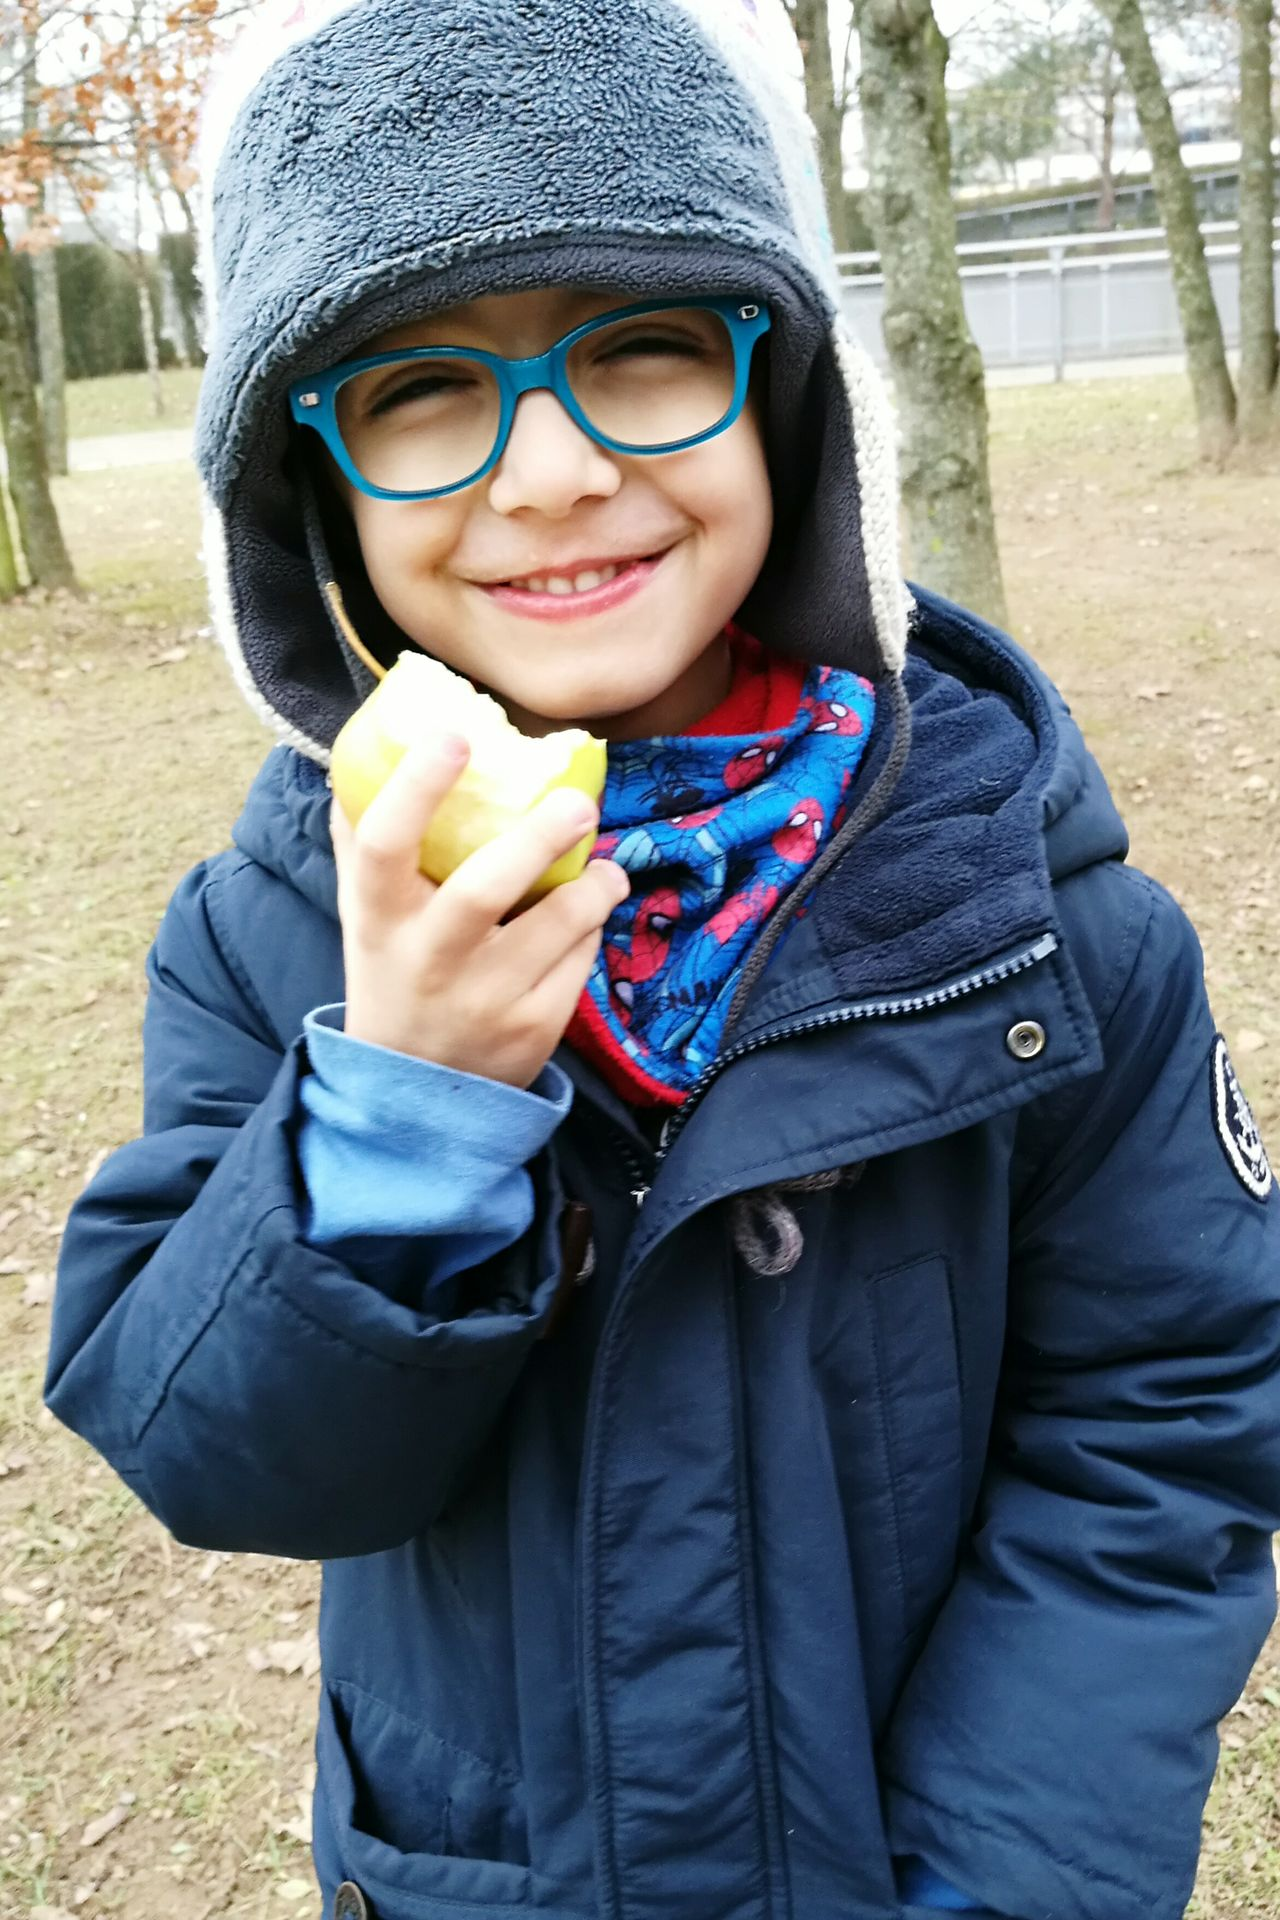 An apple a day... Eating Healthy Eating Apples Joy Children Photography Happy Smile Glasses Outdoors Luxembourg Streetphotography One Person Cheerful Childhood Portrait